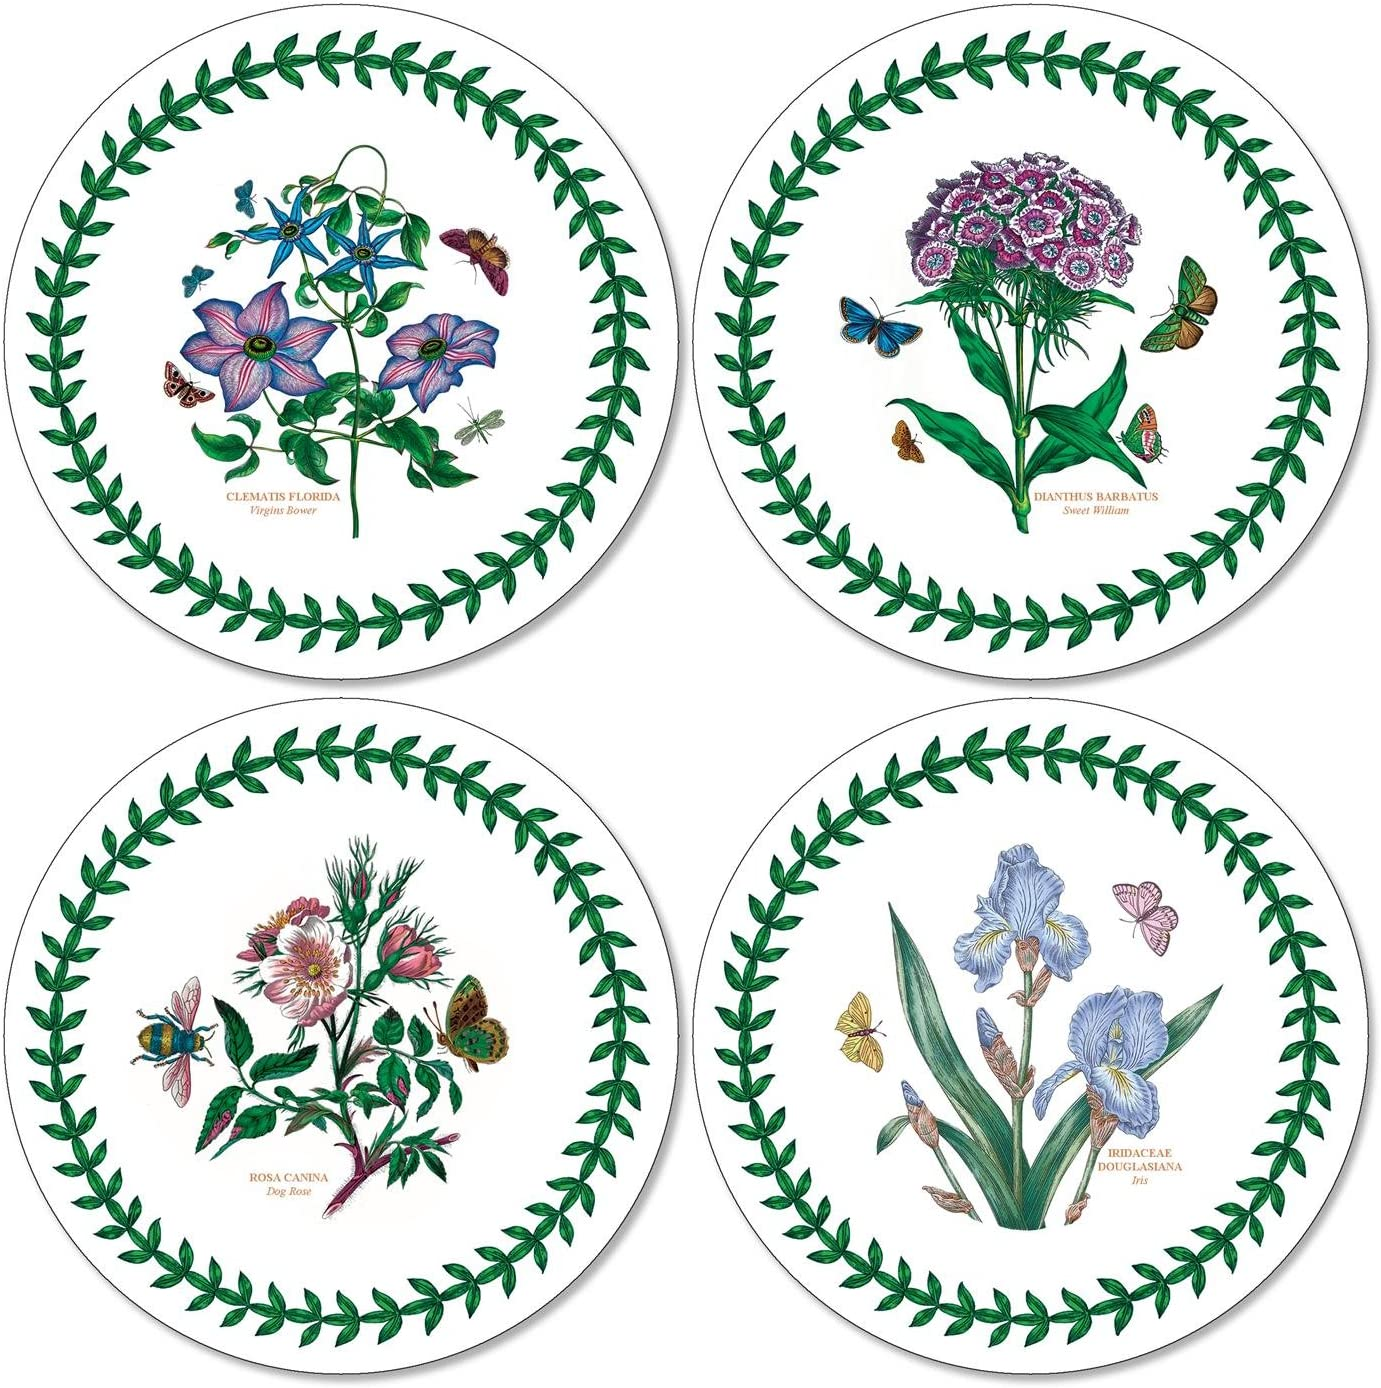 Portmeirion Home & Gifts Botanic Garden Round Coasters S/4 (m), Fabric, Multi-Coloured